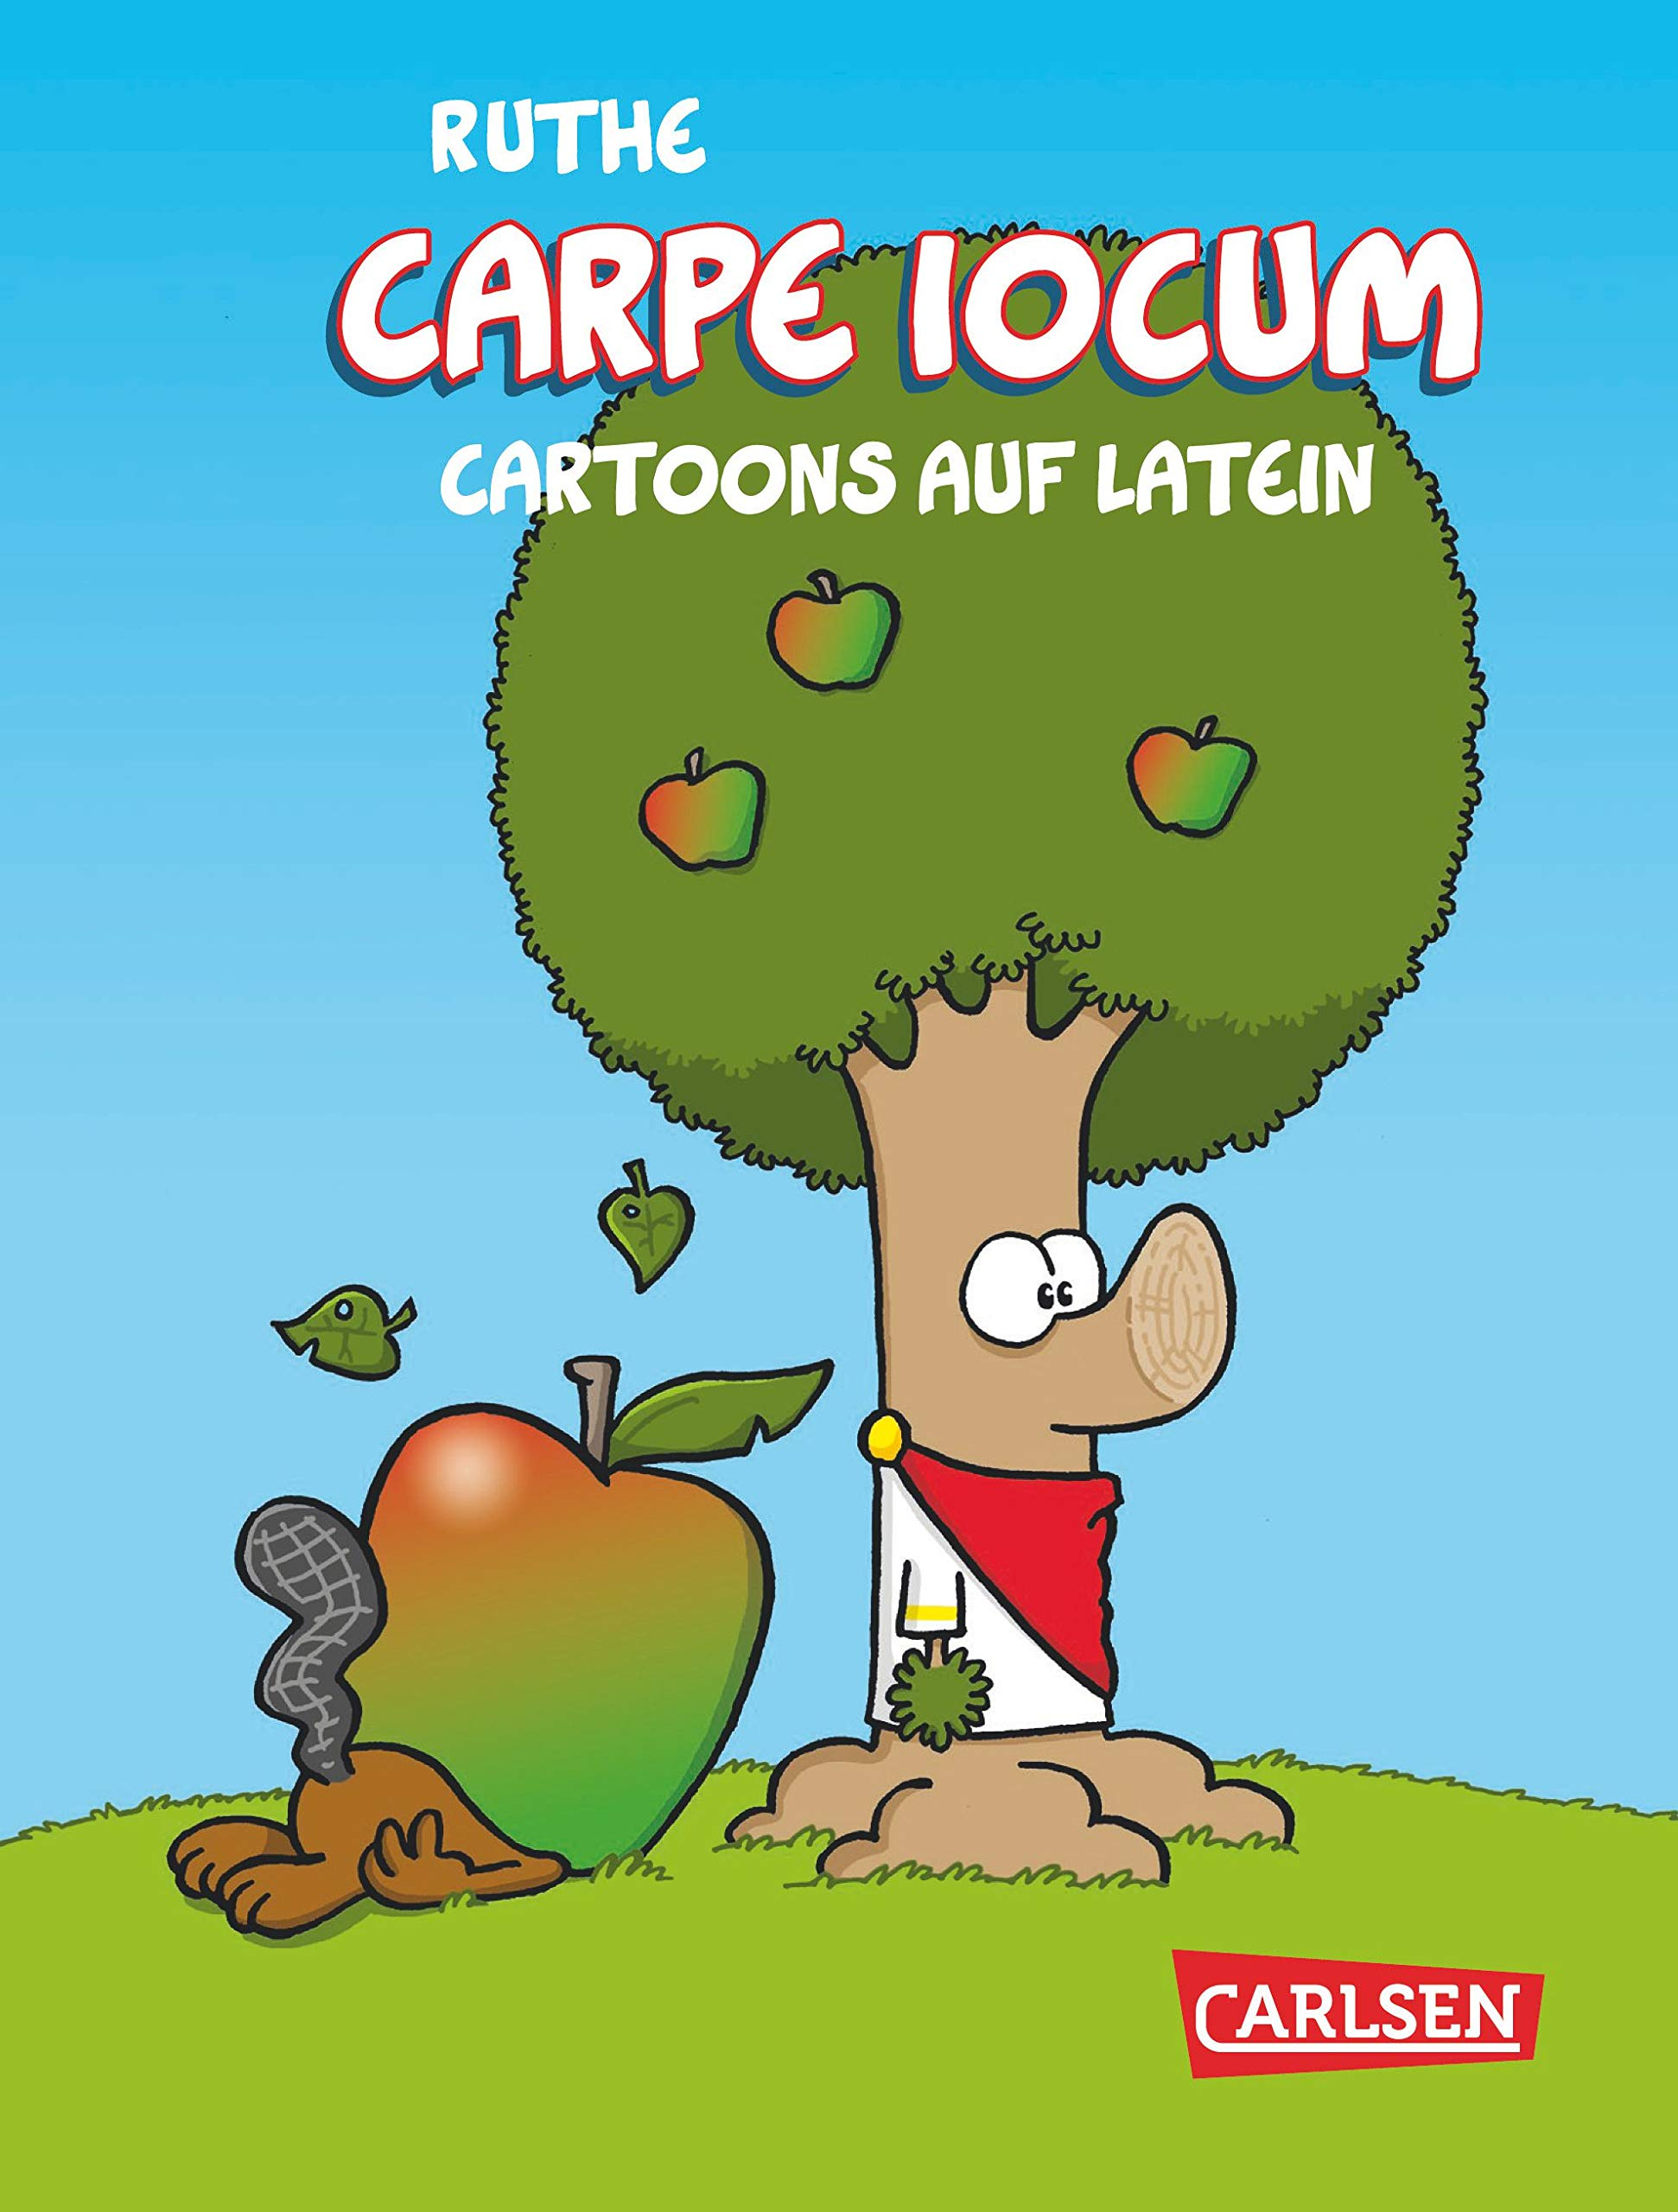 Carpe Iocum  Cartoons Auf Latein  Shit Happens